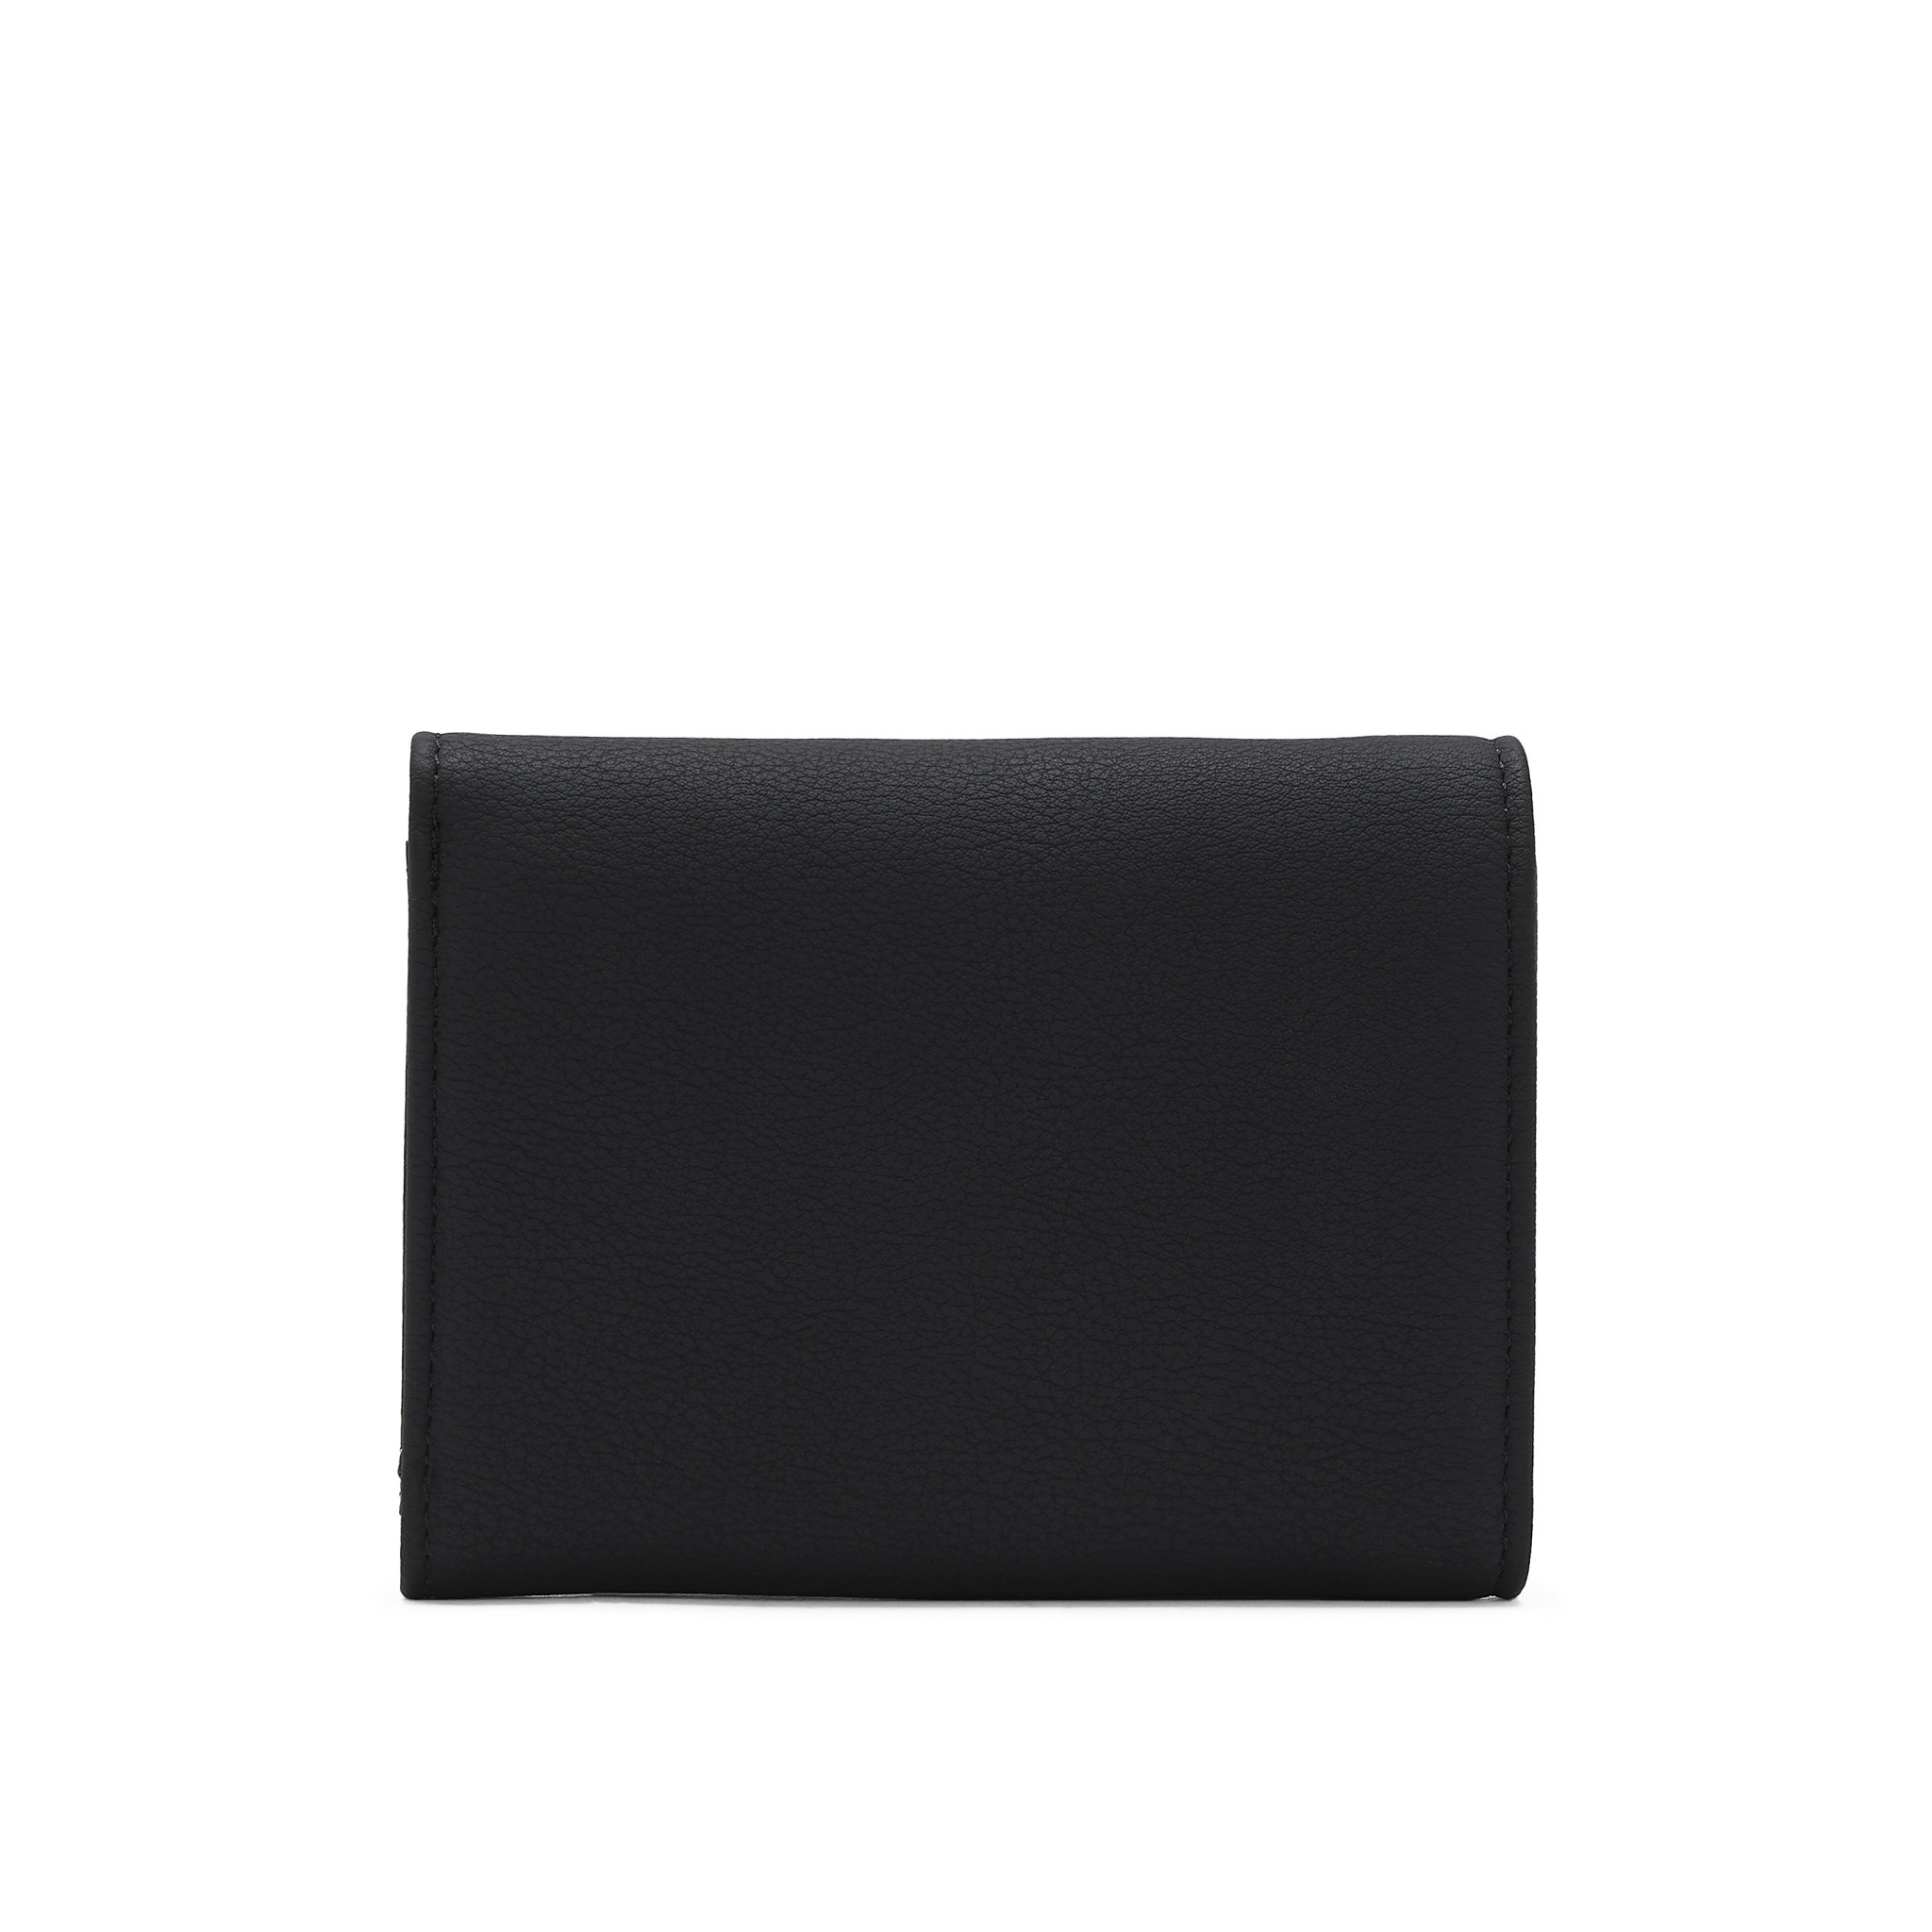 Colab Colab Crafted Wallet (#6369) - Black